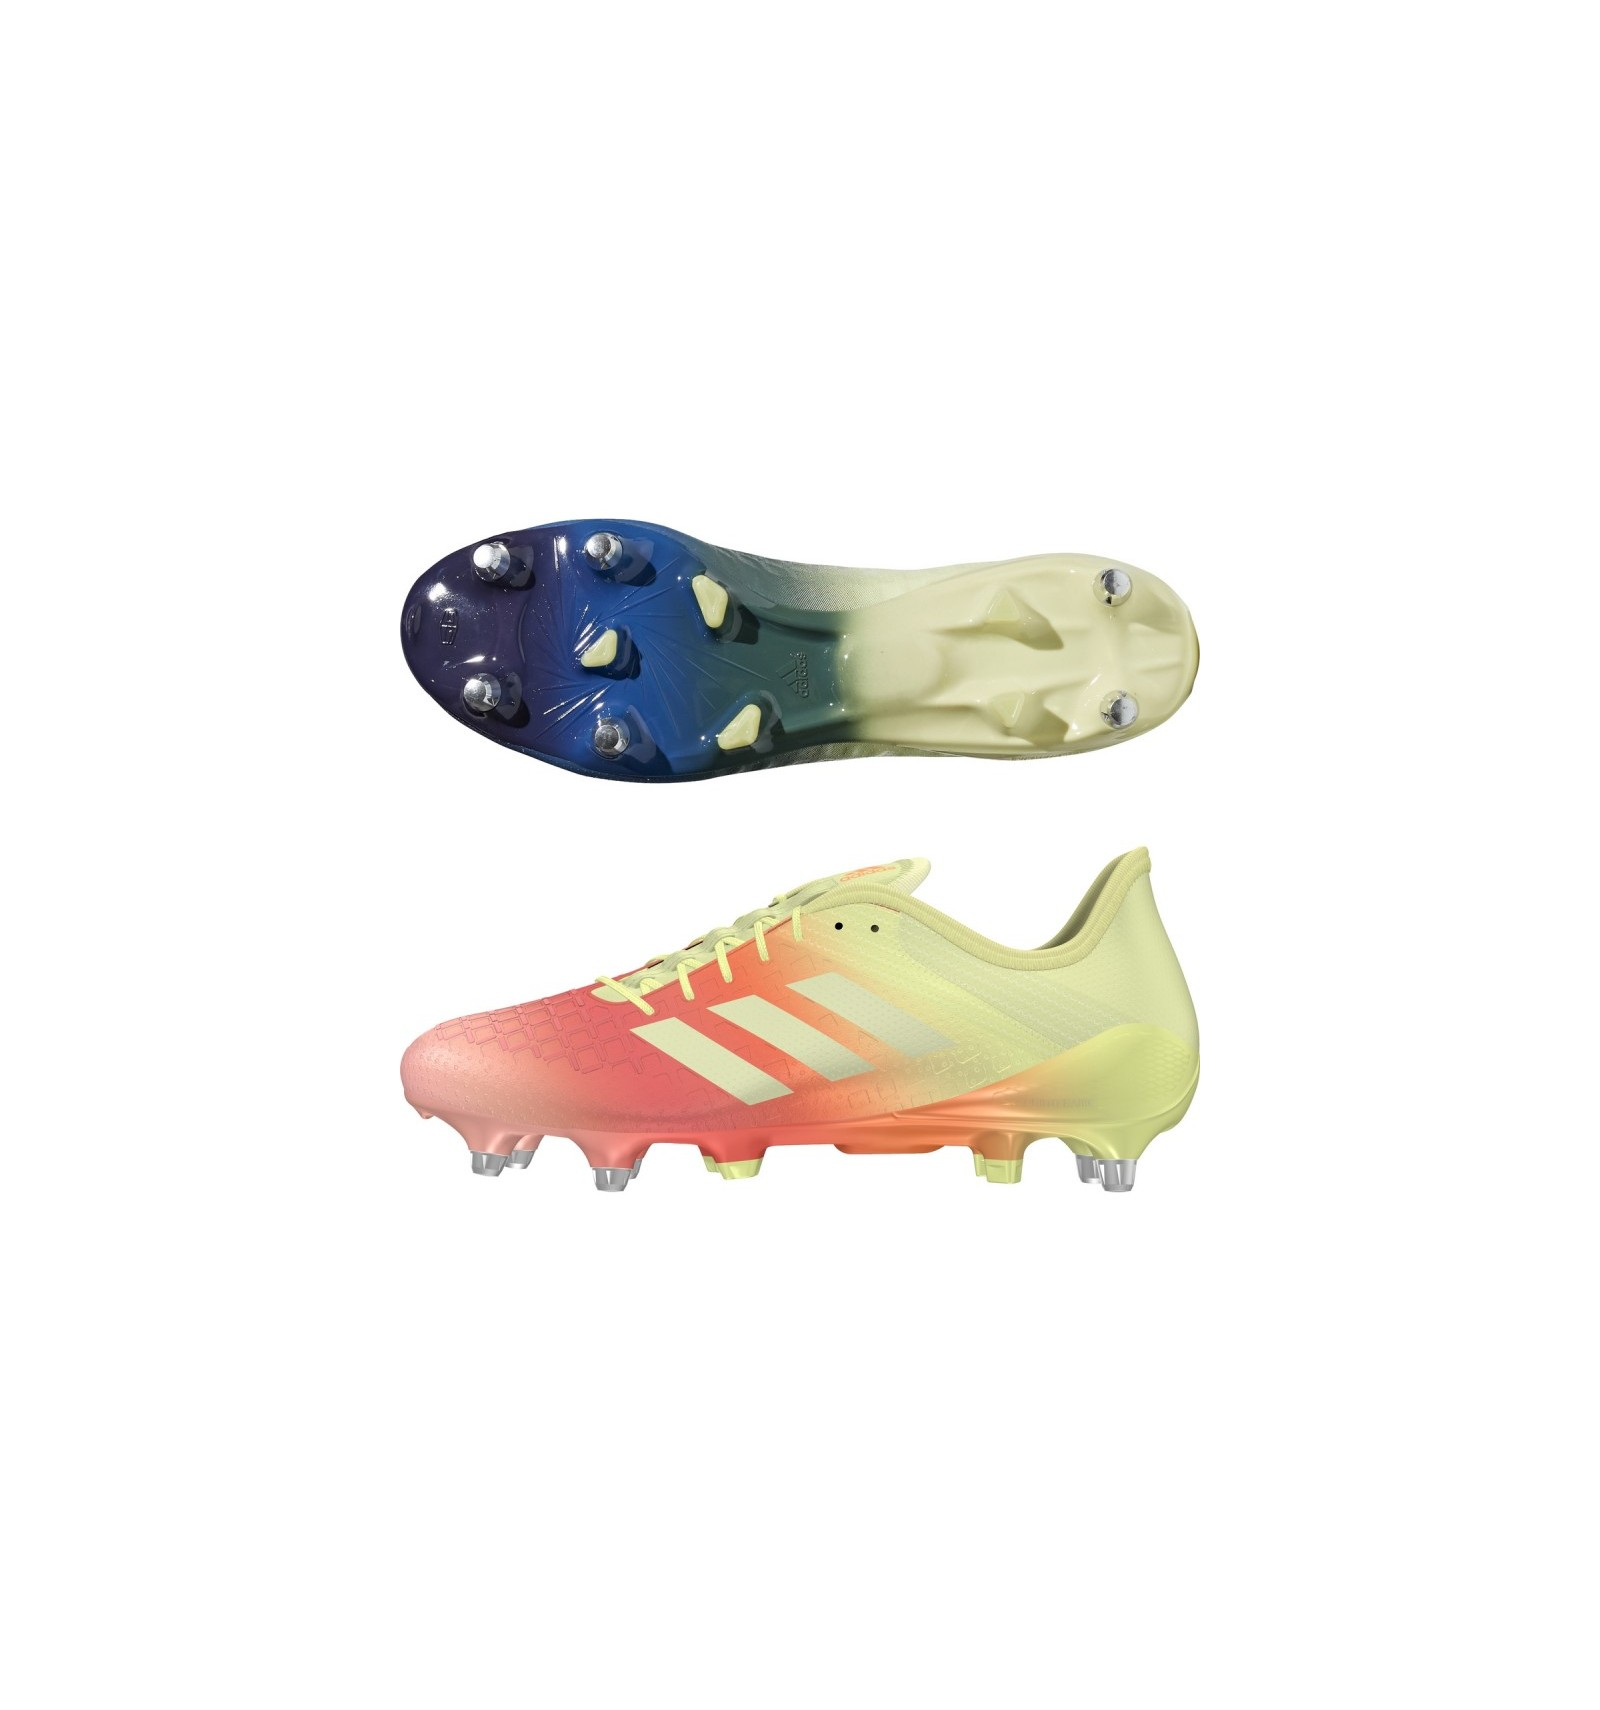 online store 3f85d 98157 Chaussures Predator Malice Control SG 18 Adidas jaune rouge bleu